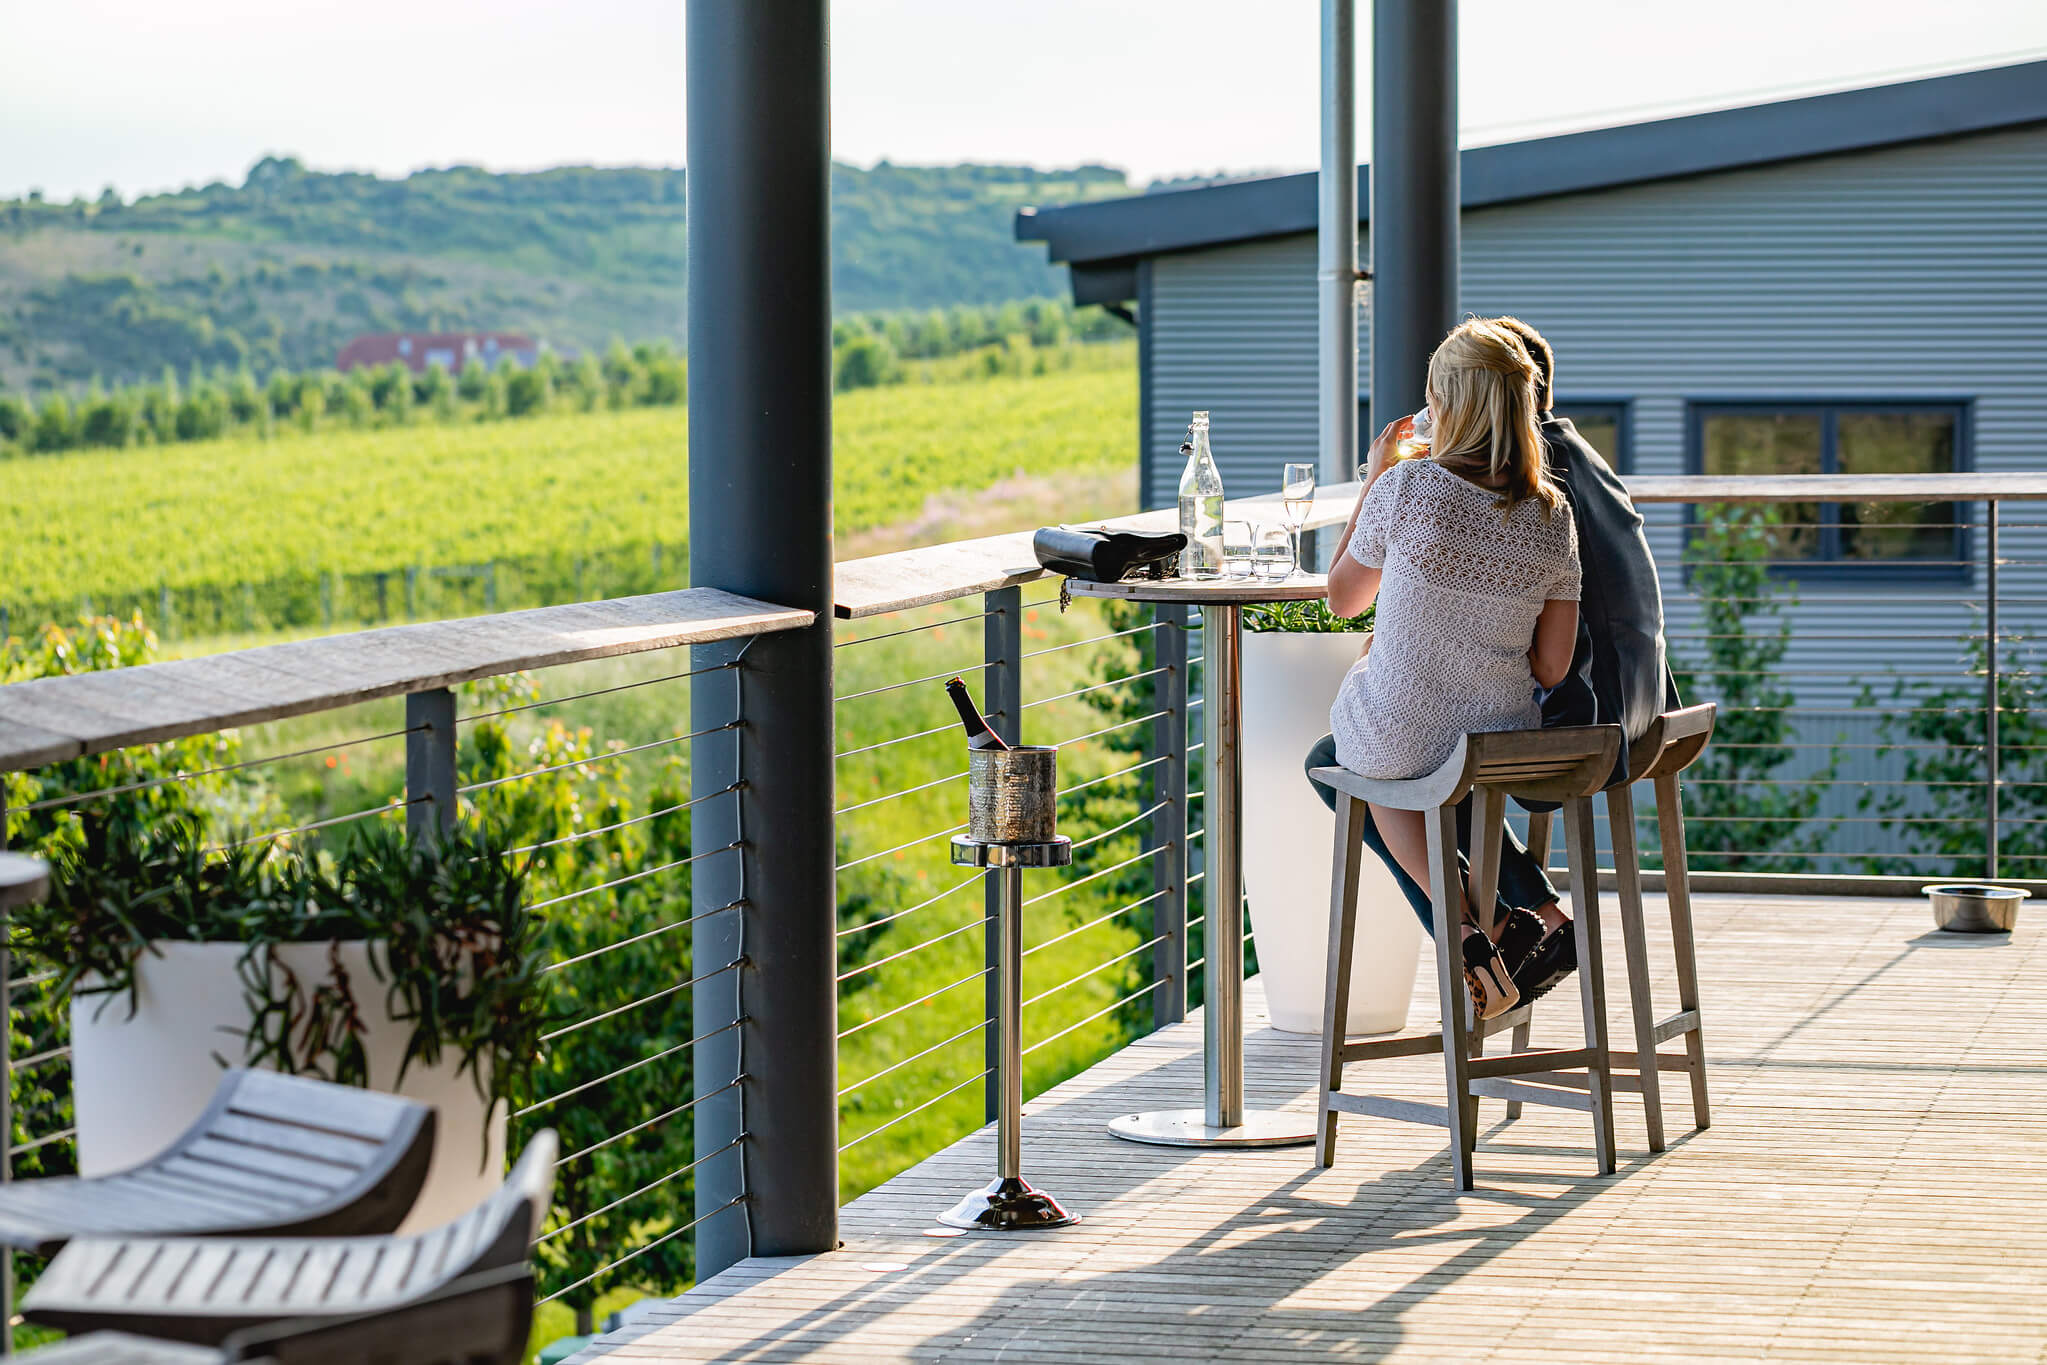 Couple sitting on the balcony overlooking the Vineyard